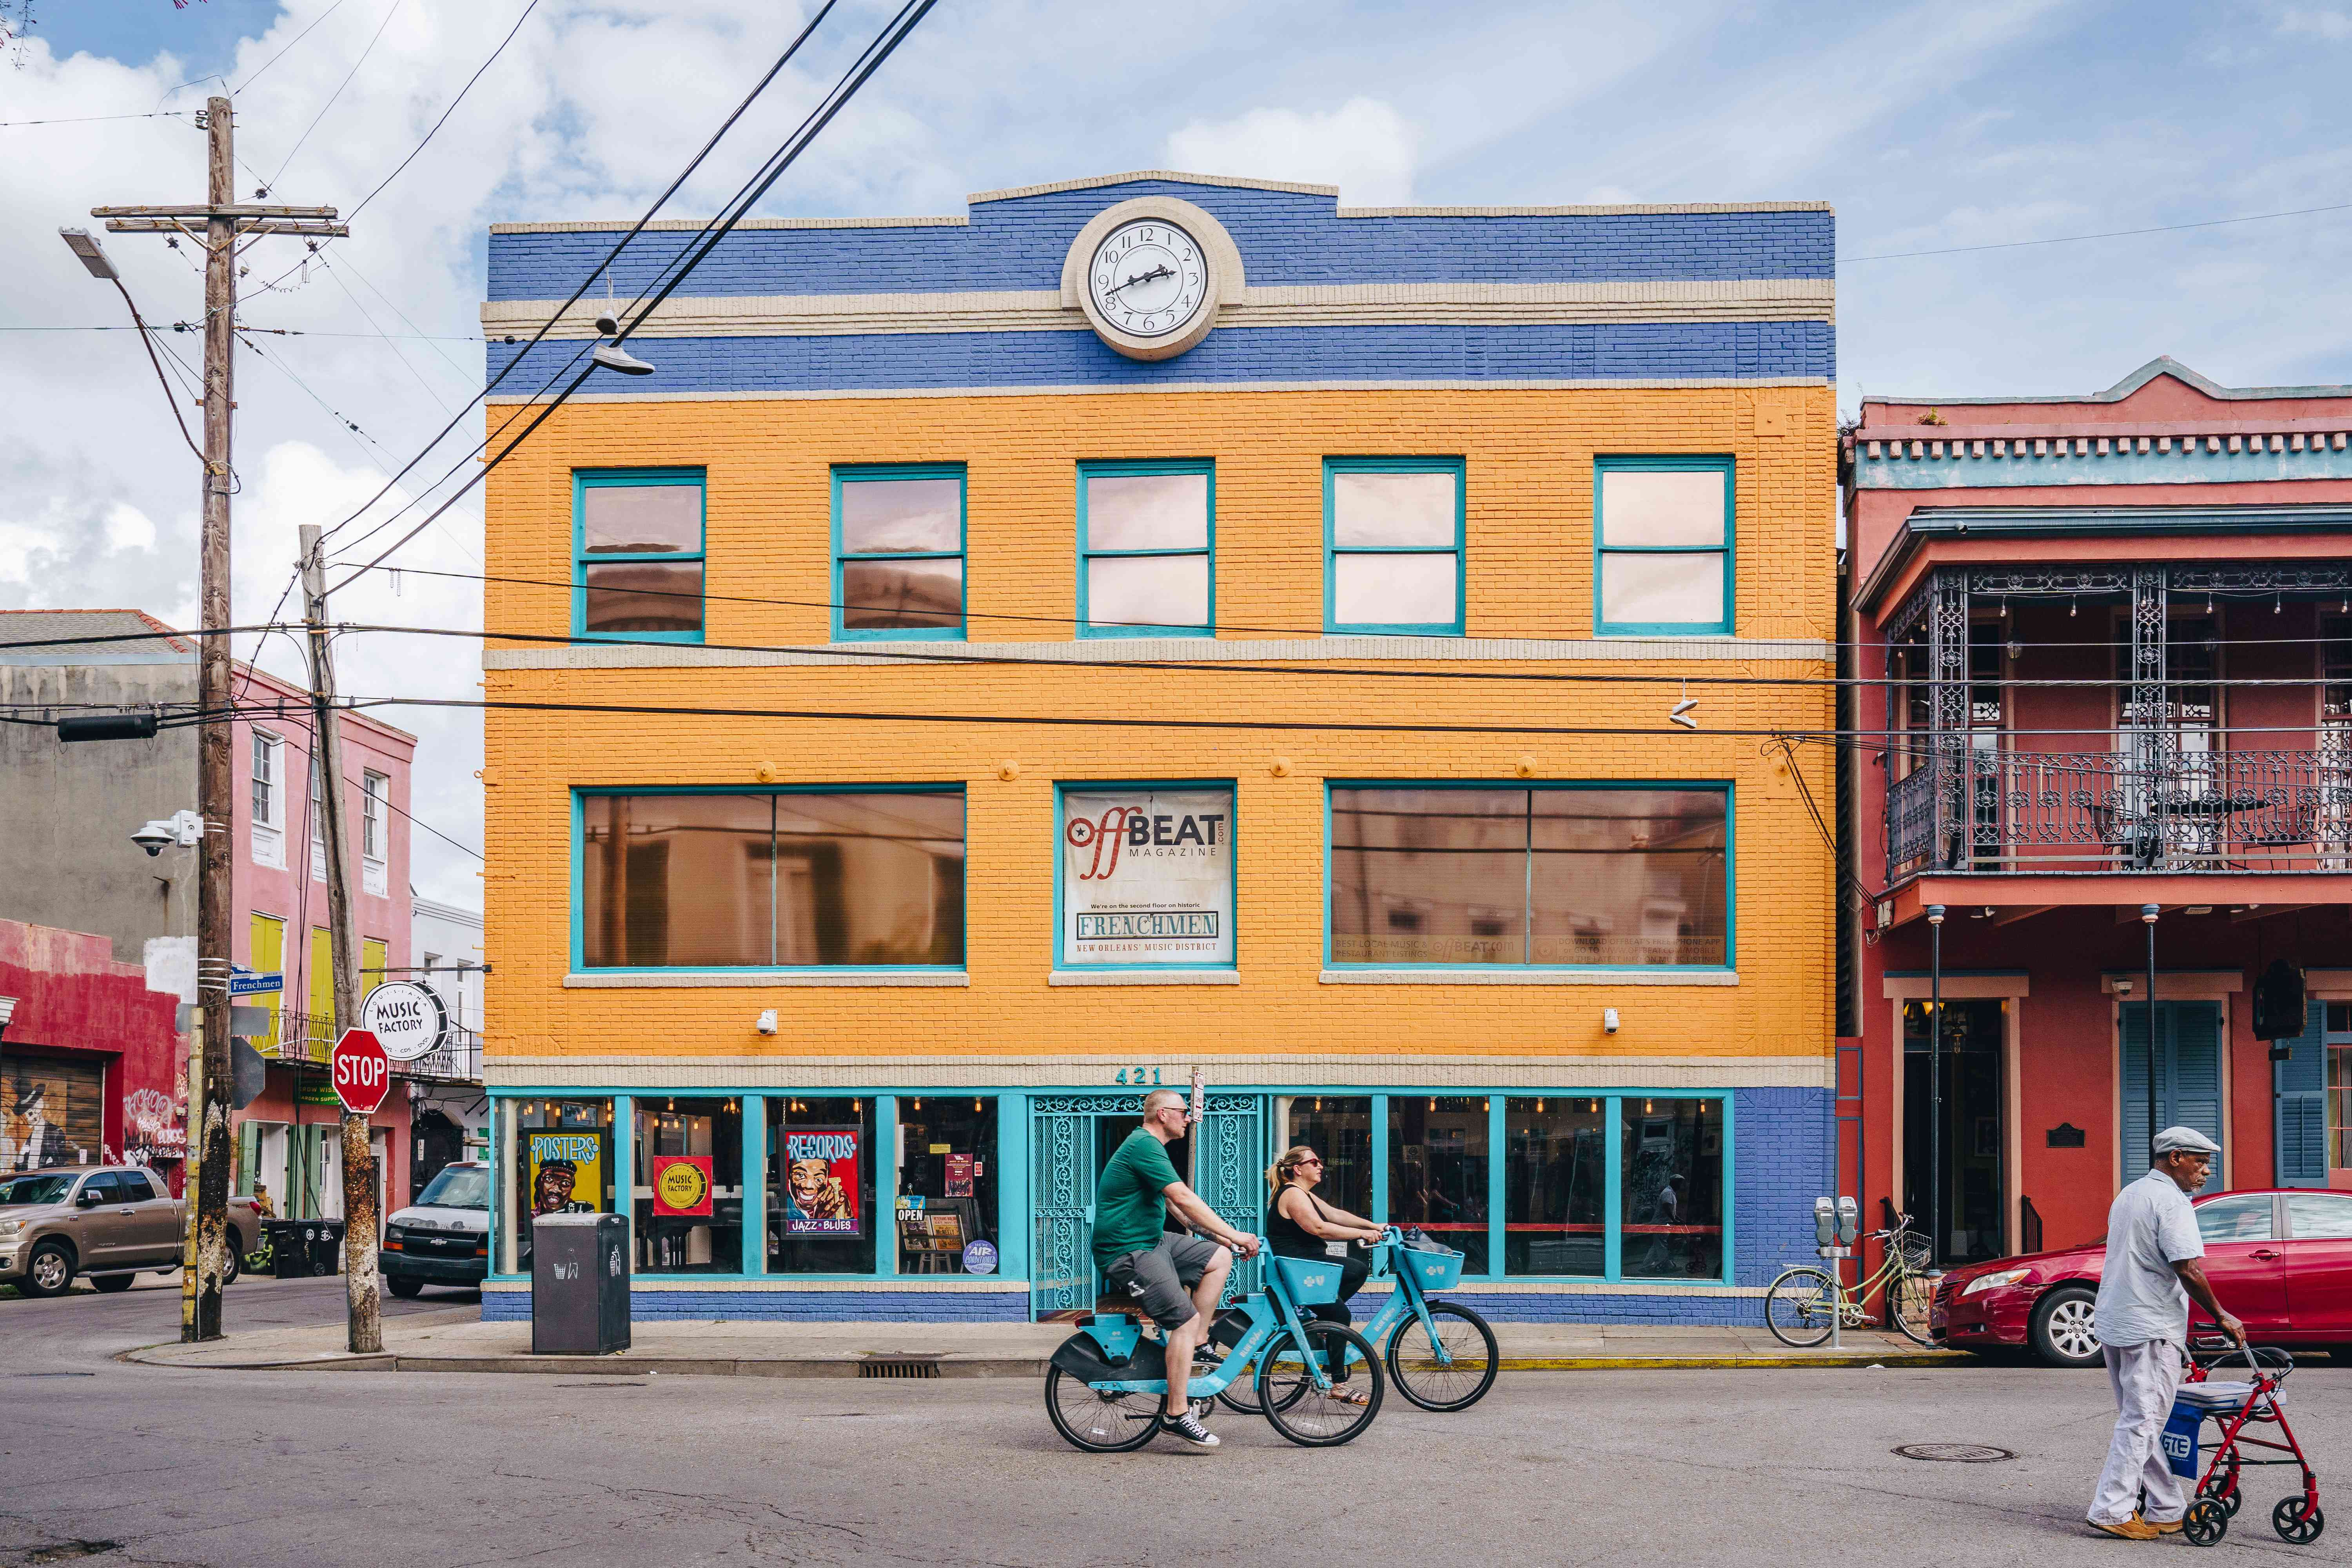 People biking by colorful buildings on Frenchmen street